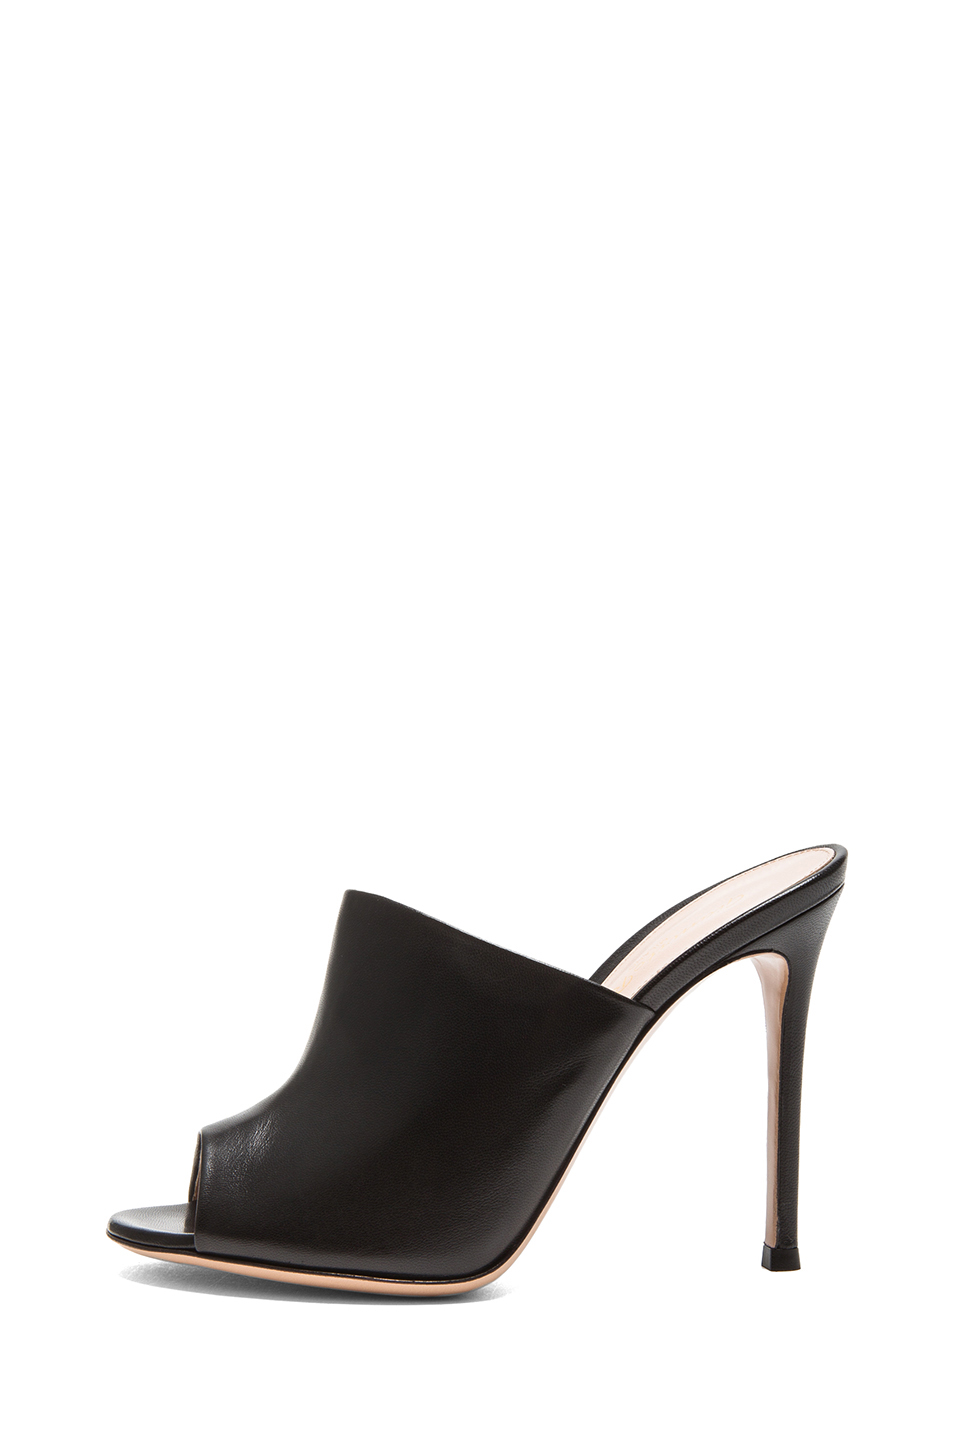 Gianvito Rossi | Leather Mule Heels in Black